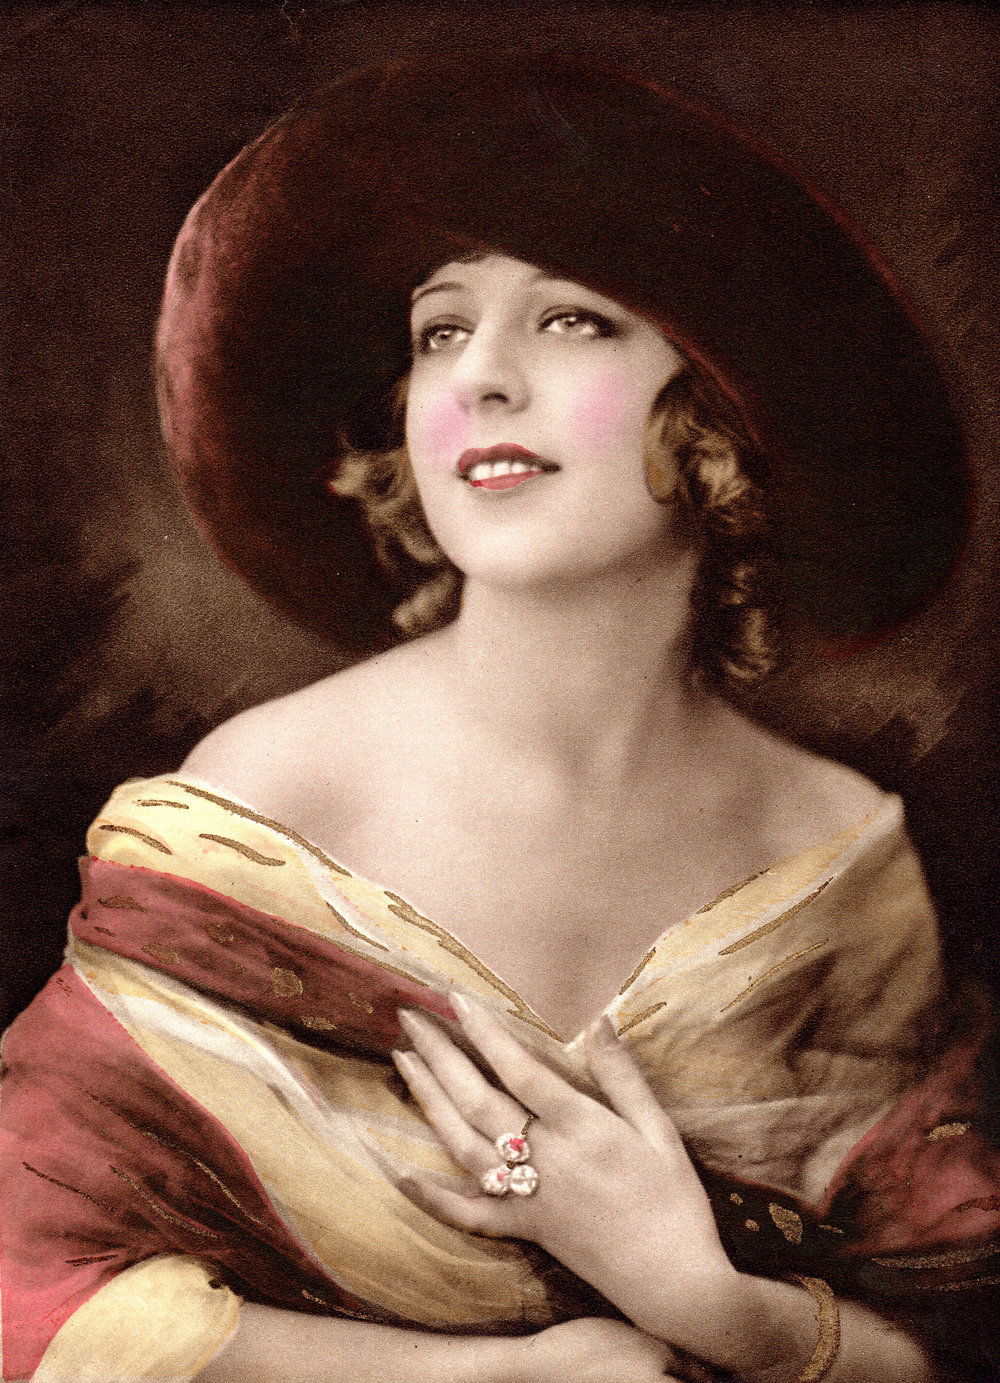 Hand-coloured German photogravure portraits from the early 20th century